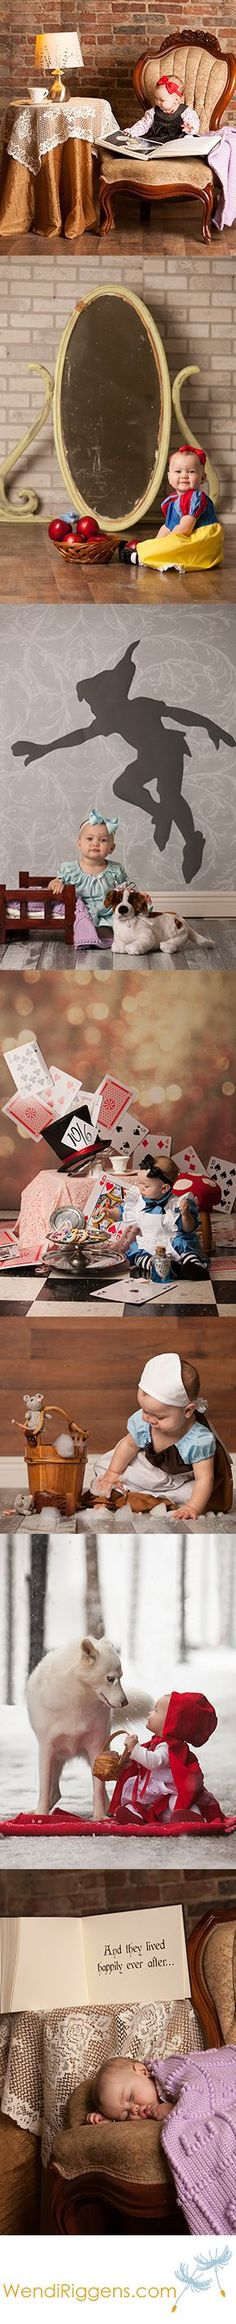 Links to great fairytale costumes on ETSY. Plus the photography shoot is #cute kid #lovely kid #Cute Baby| http://cutebabygallery.blogspot.com